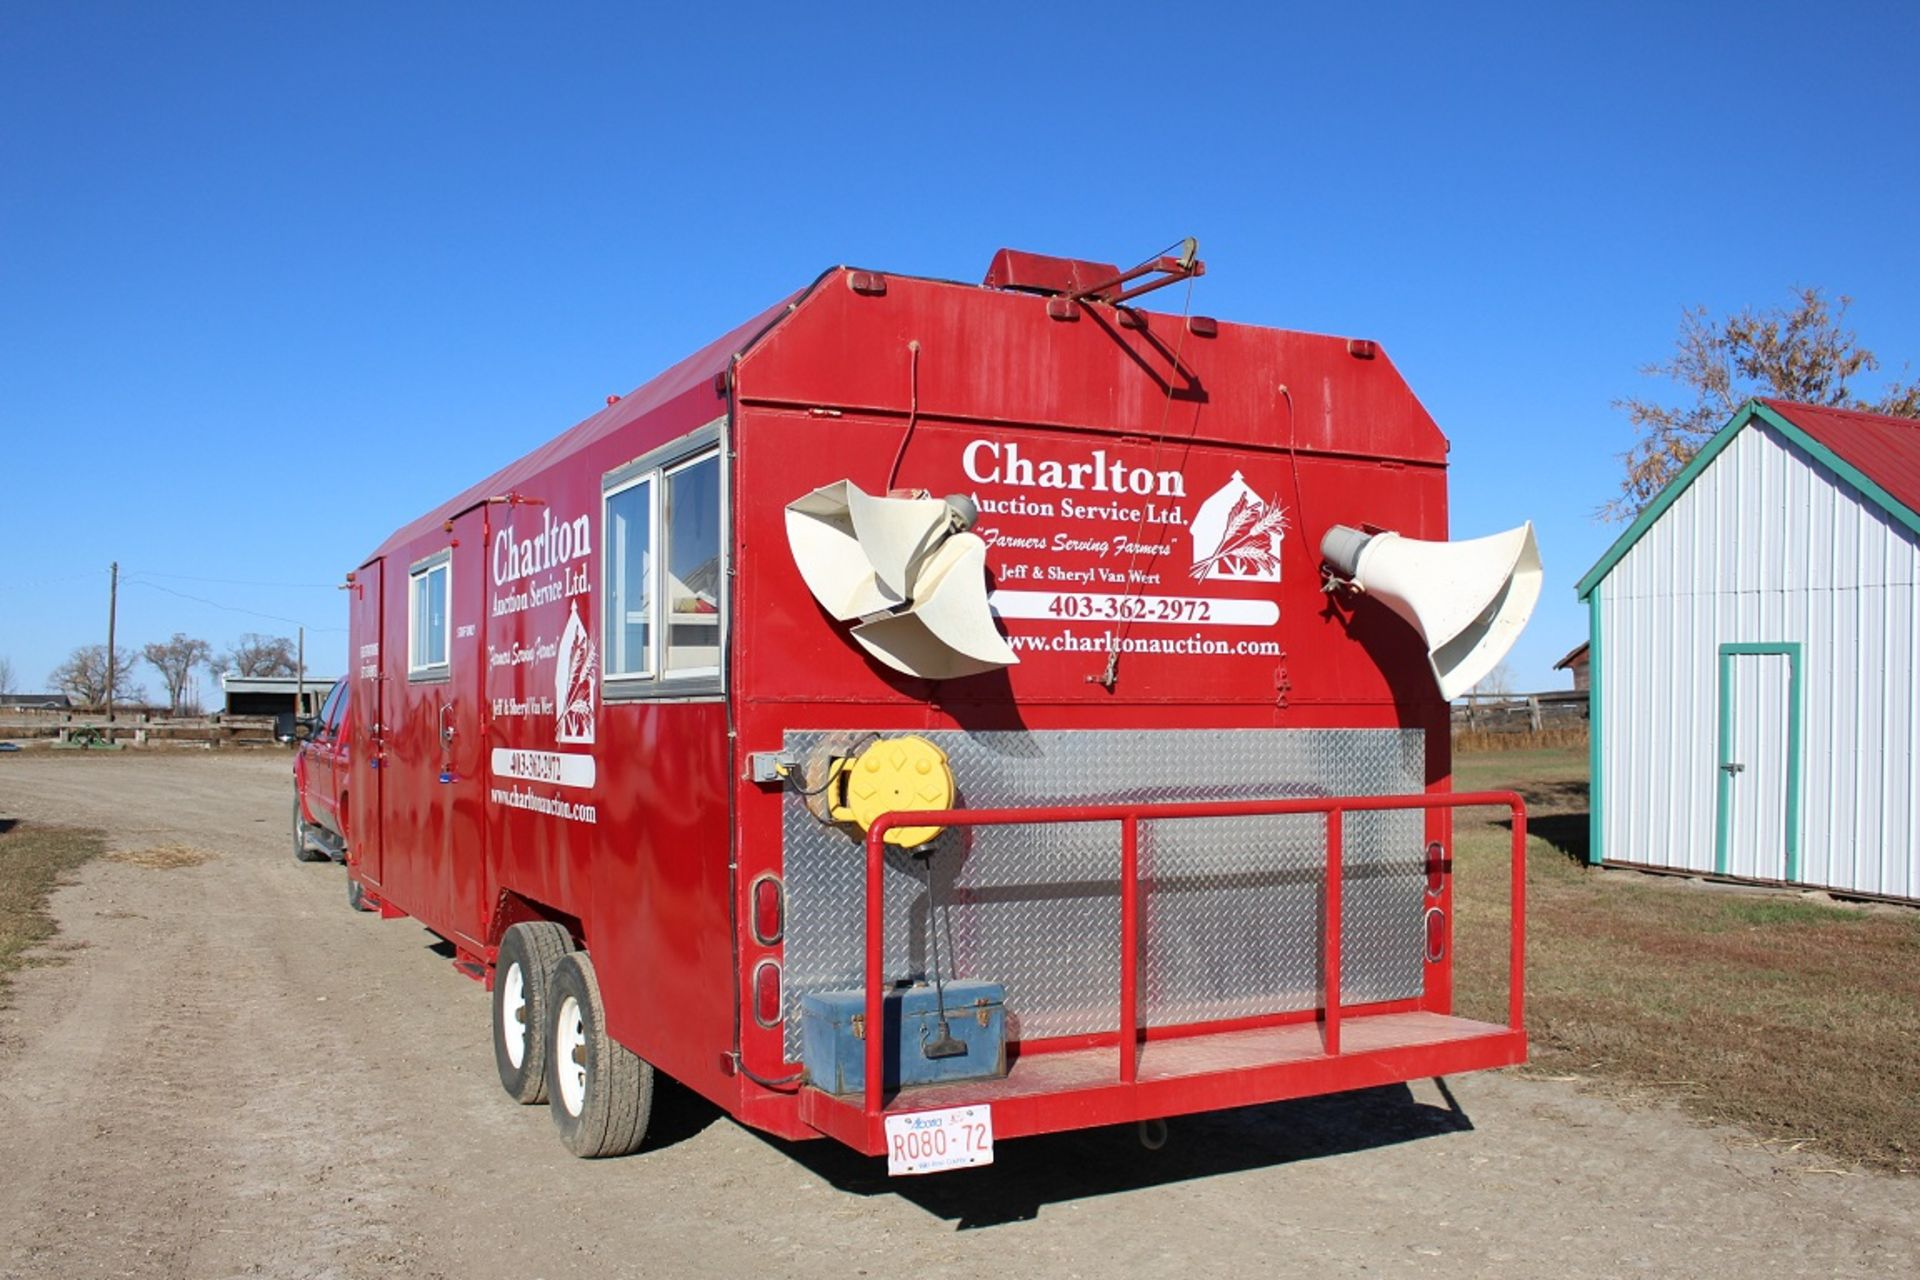 Lot 1 - 2002 SHOP BUILT 24' T/A 5W AUCTION OFFICE TRAILER W/LIGHTS, HEATER, BATHROOM & AUCTION/BOOTH